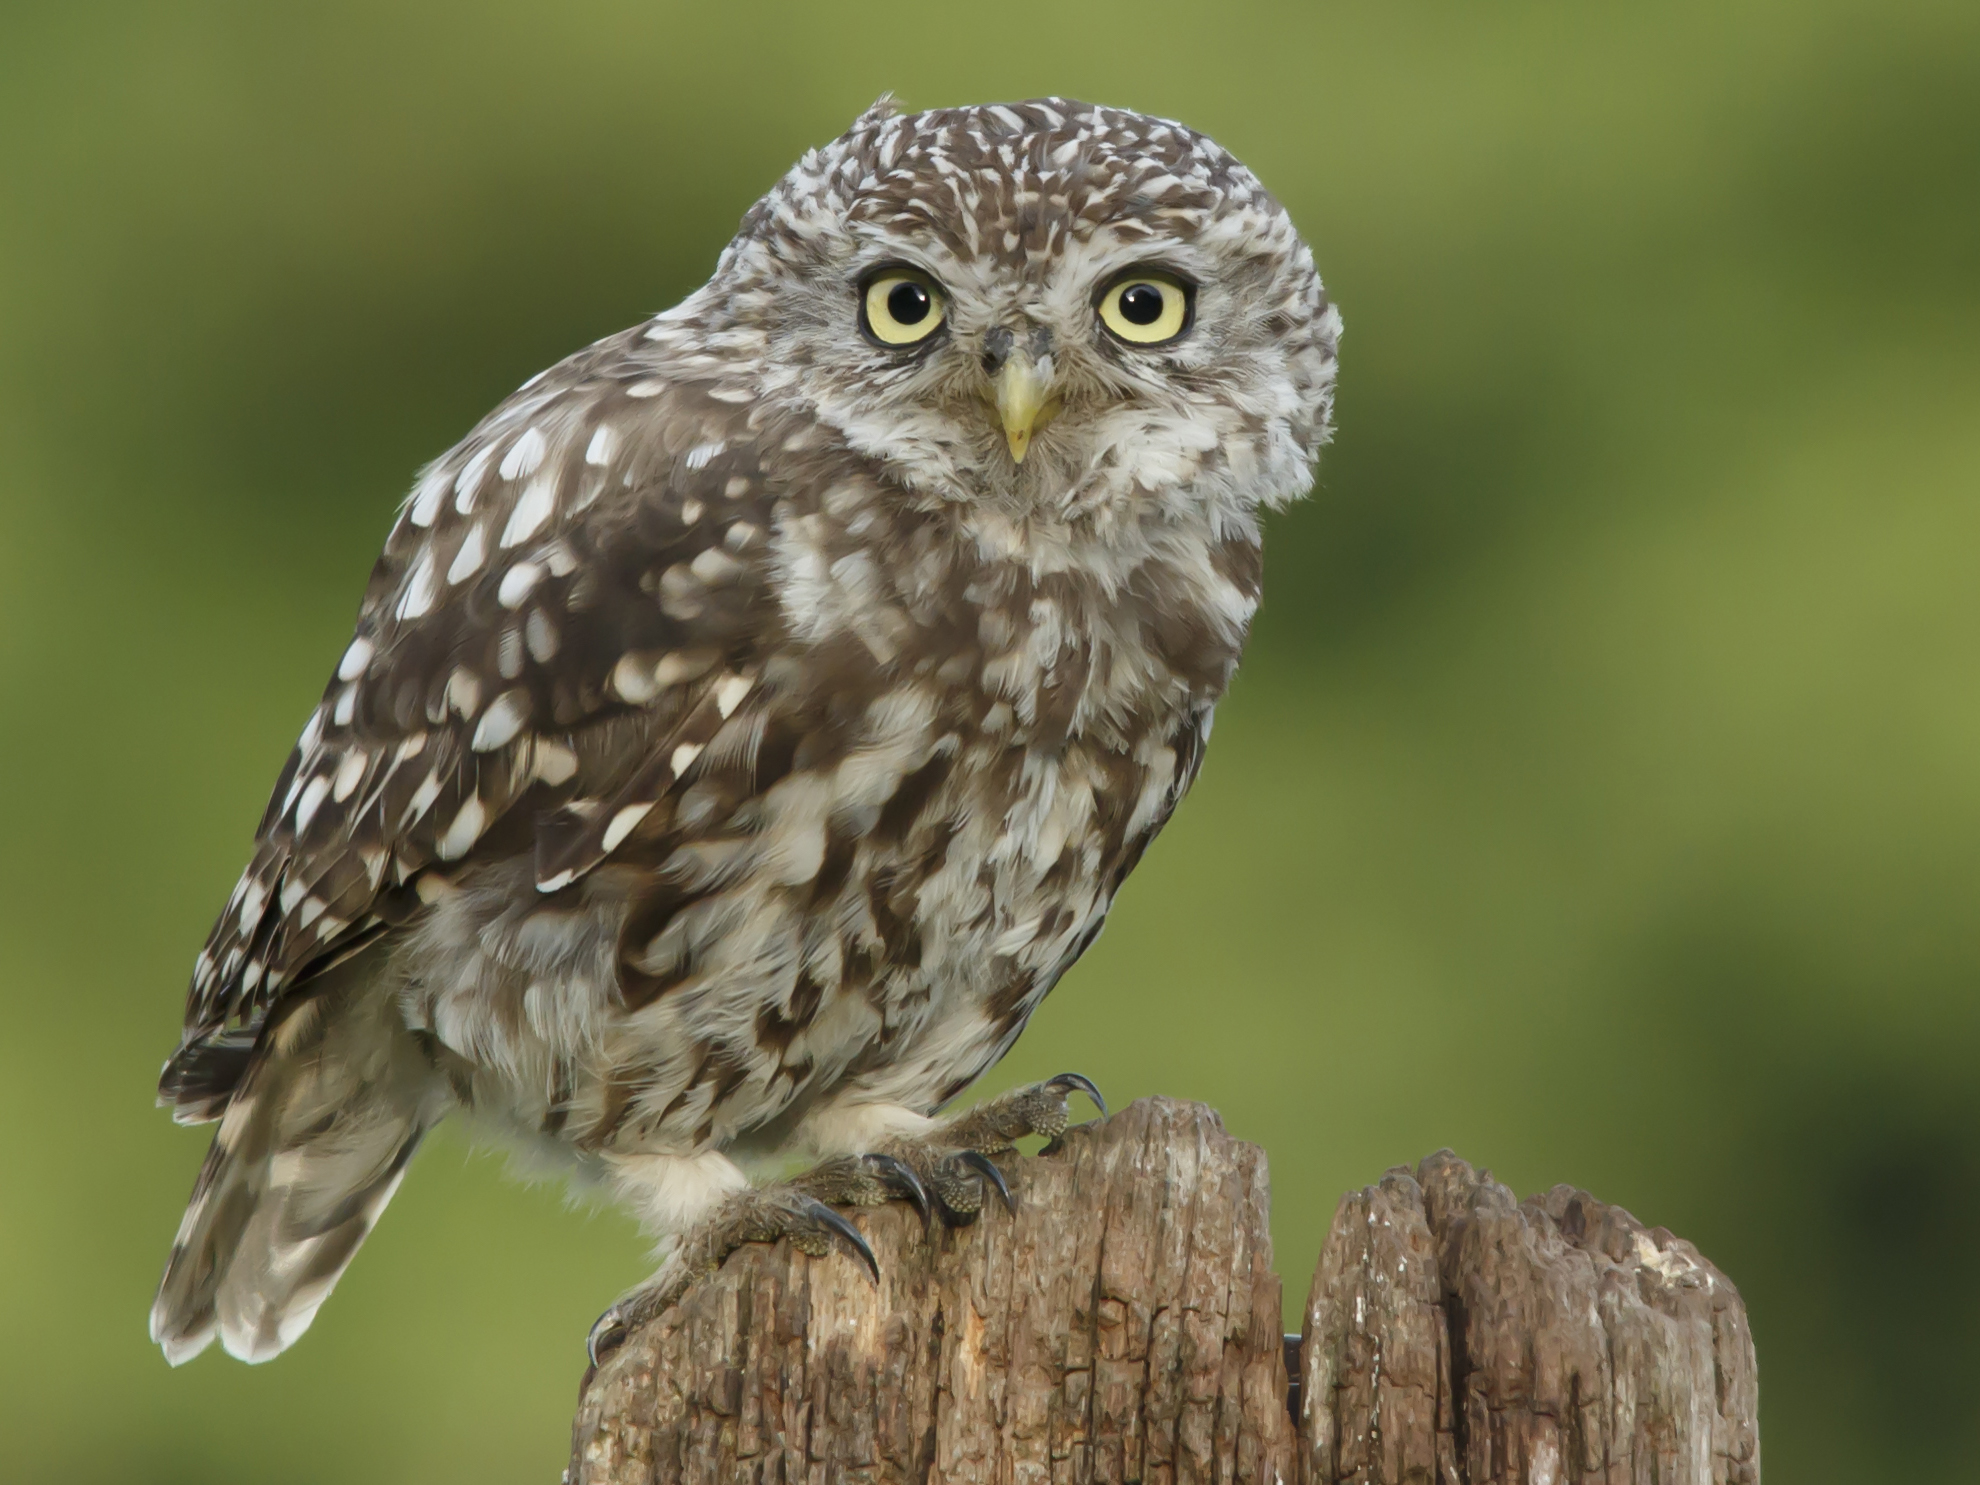 The-Cute-Juvenile-Owl-Look_Prashant-Meswani.jpg